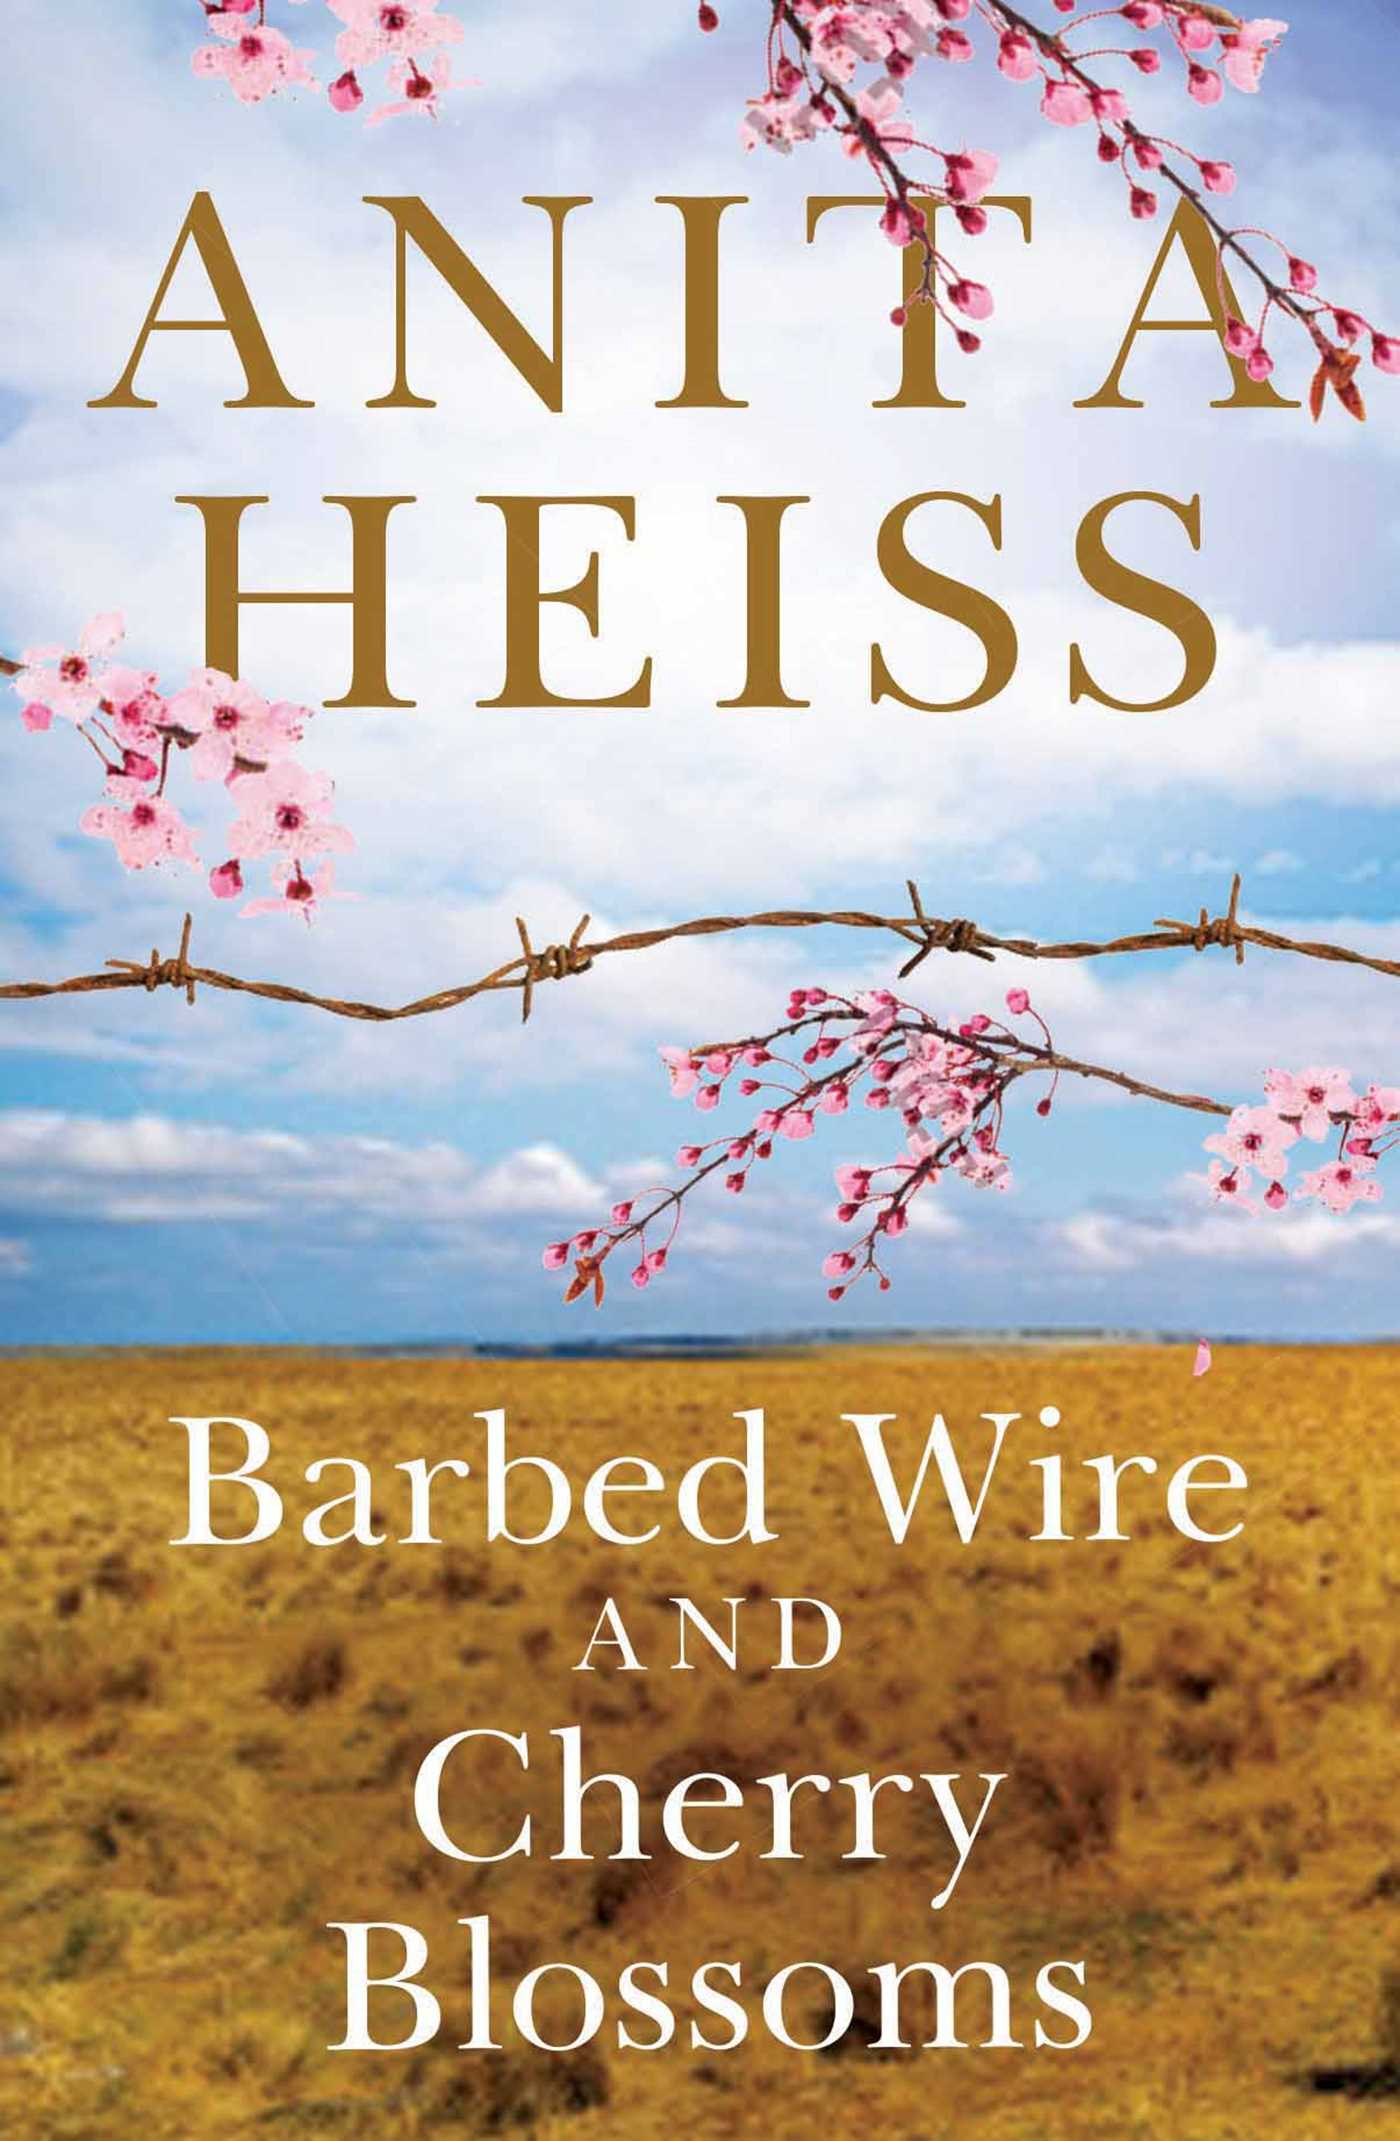 Barbed wire and cherry blossoms 9781925184846 hr